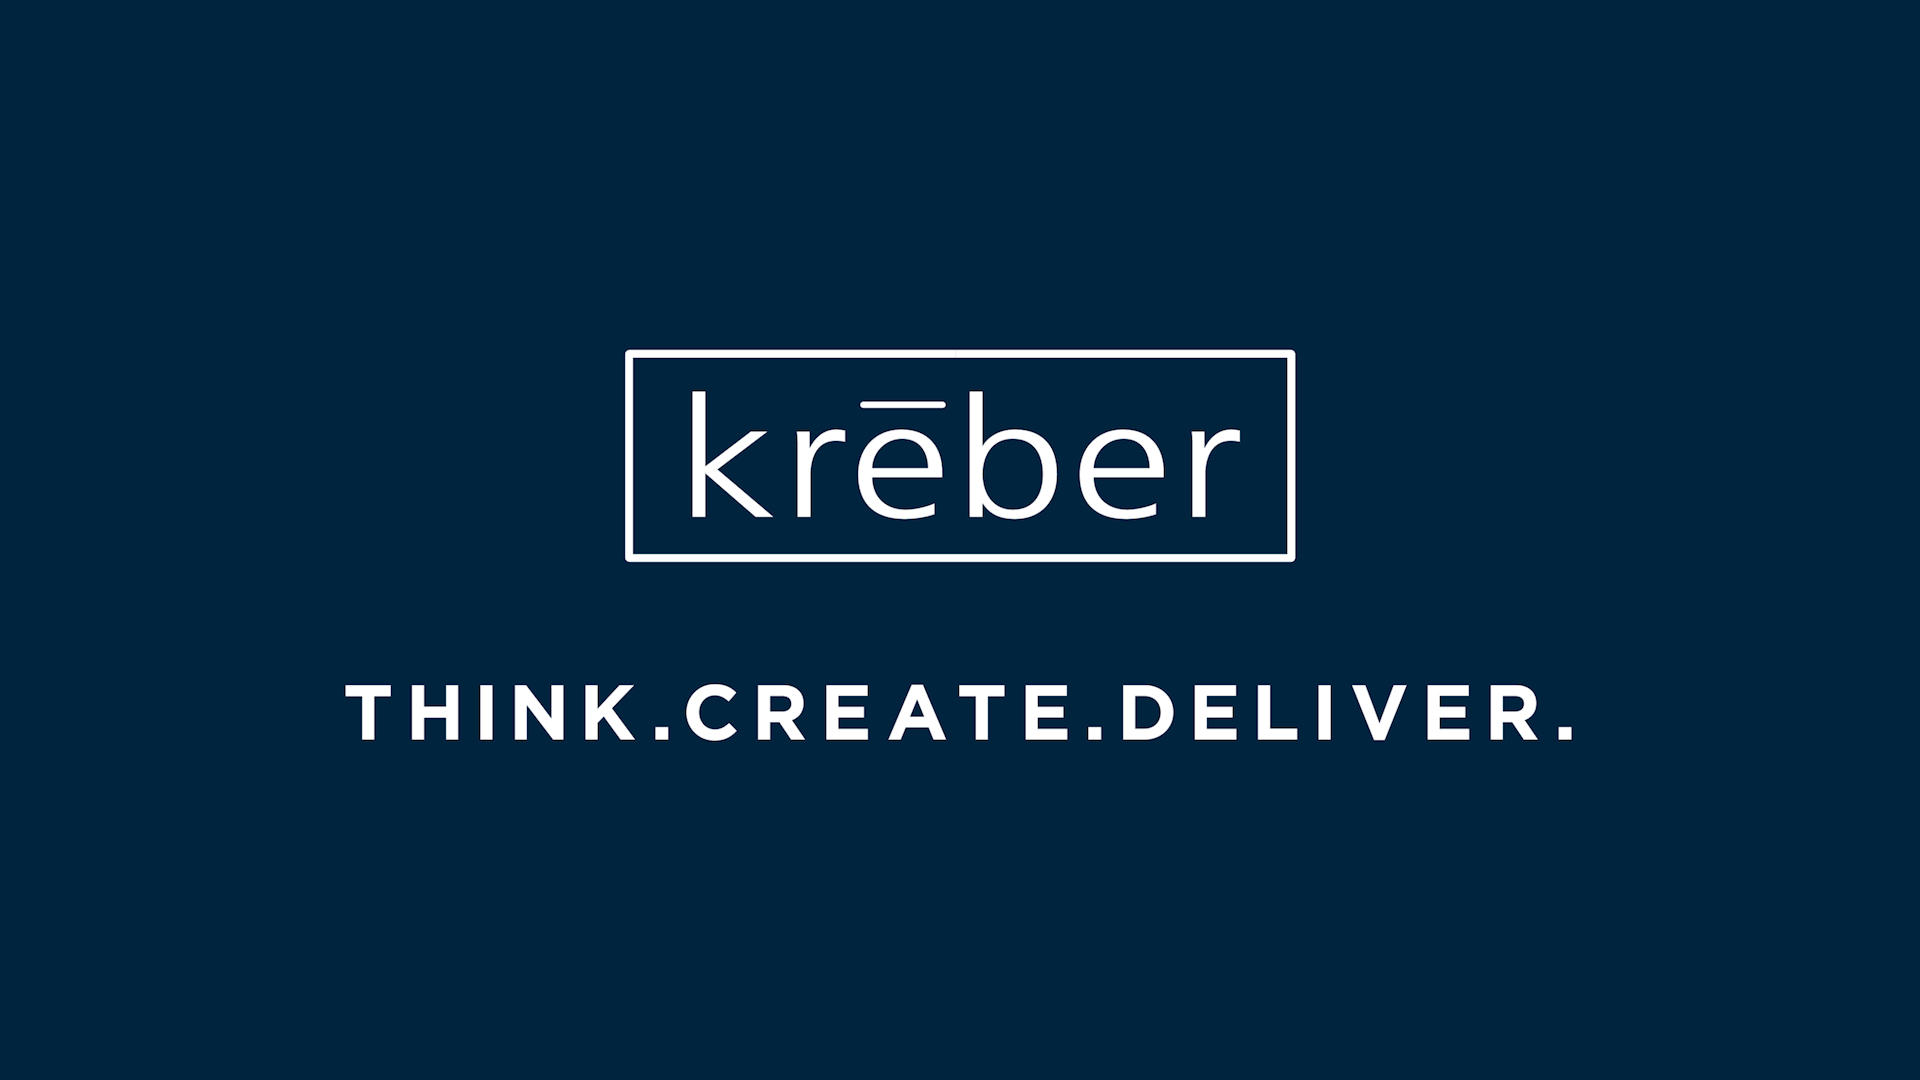 Think. Create. Deliver